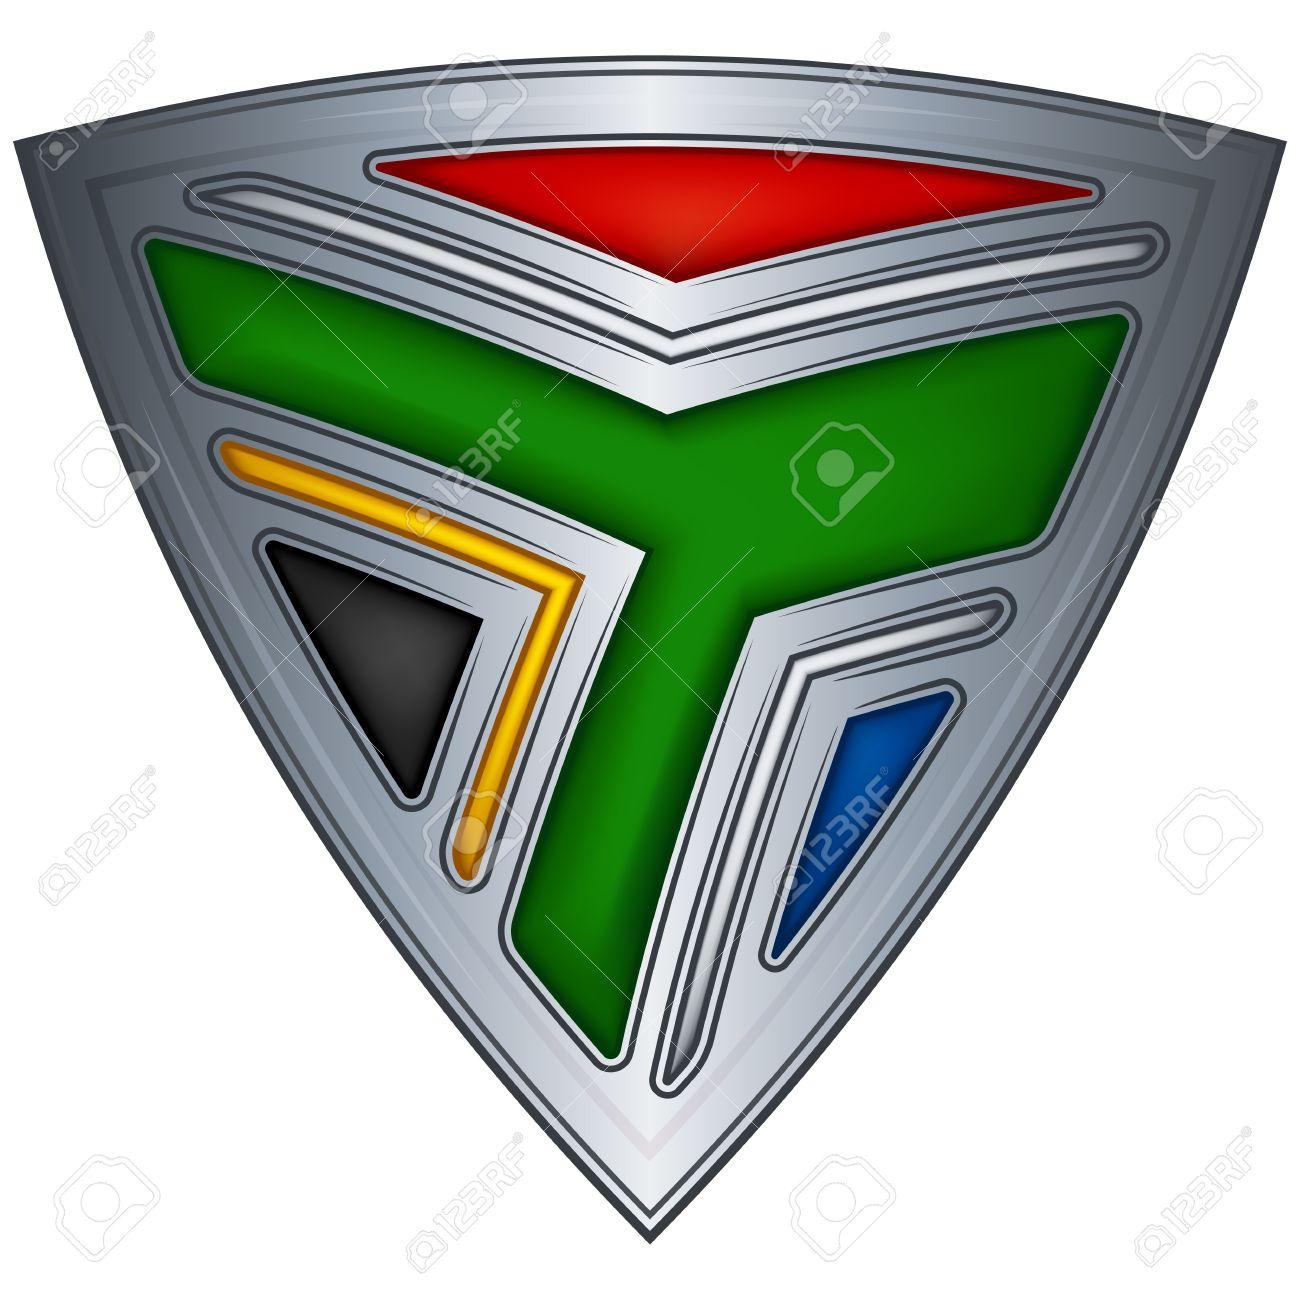 Steel shield with flag South Africa Stock Vector - 11375728